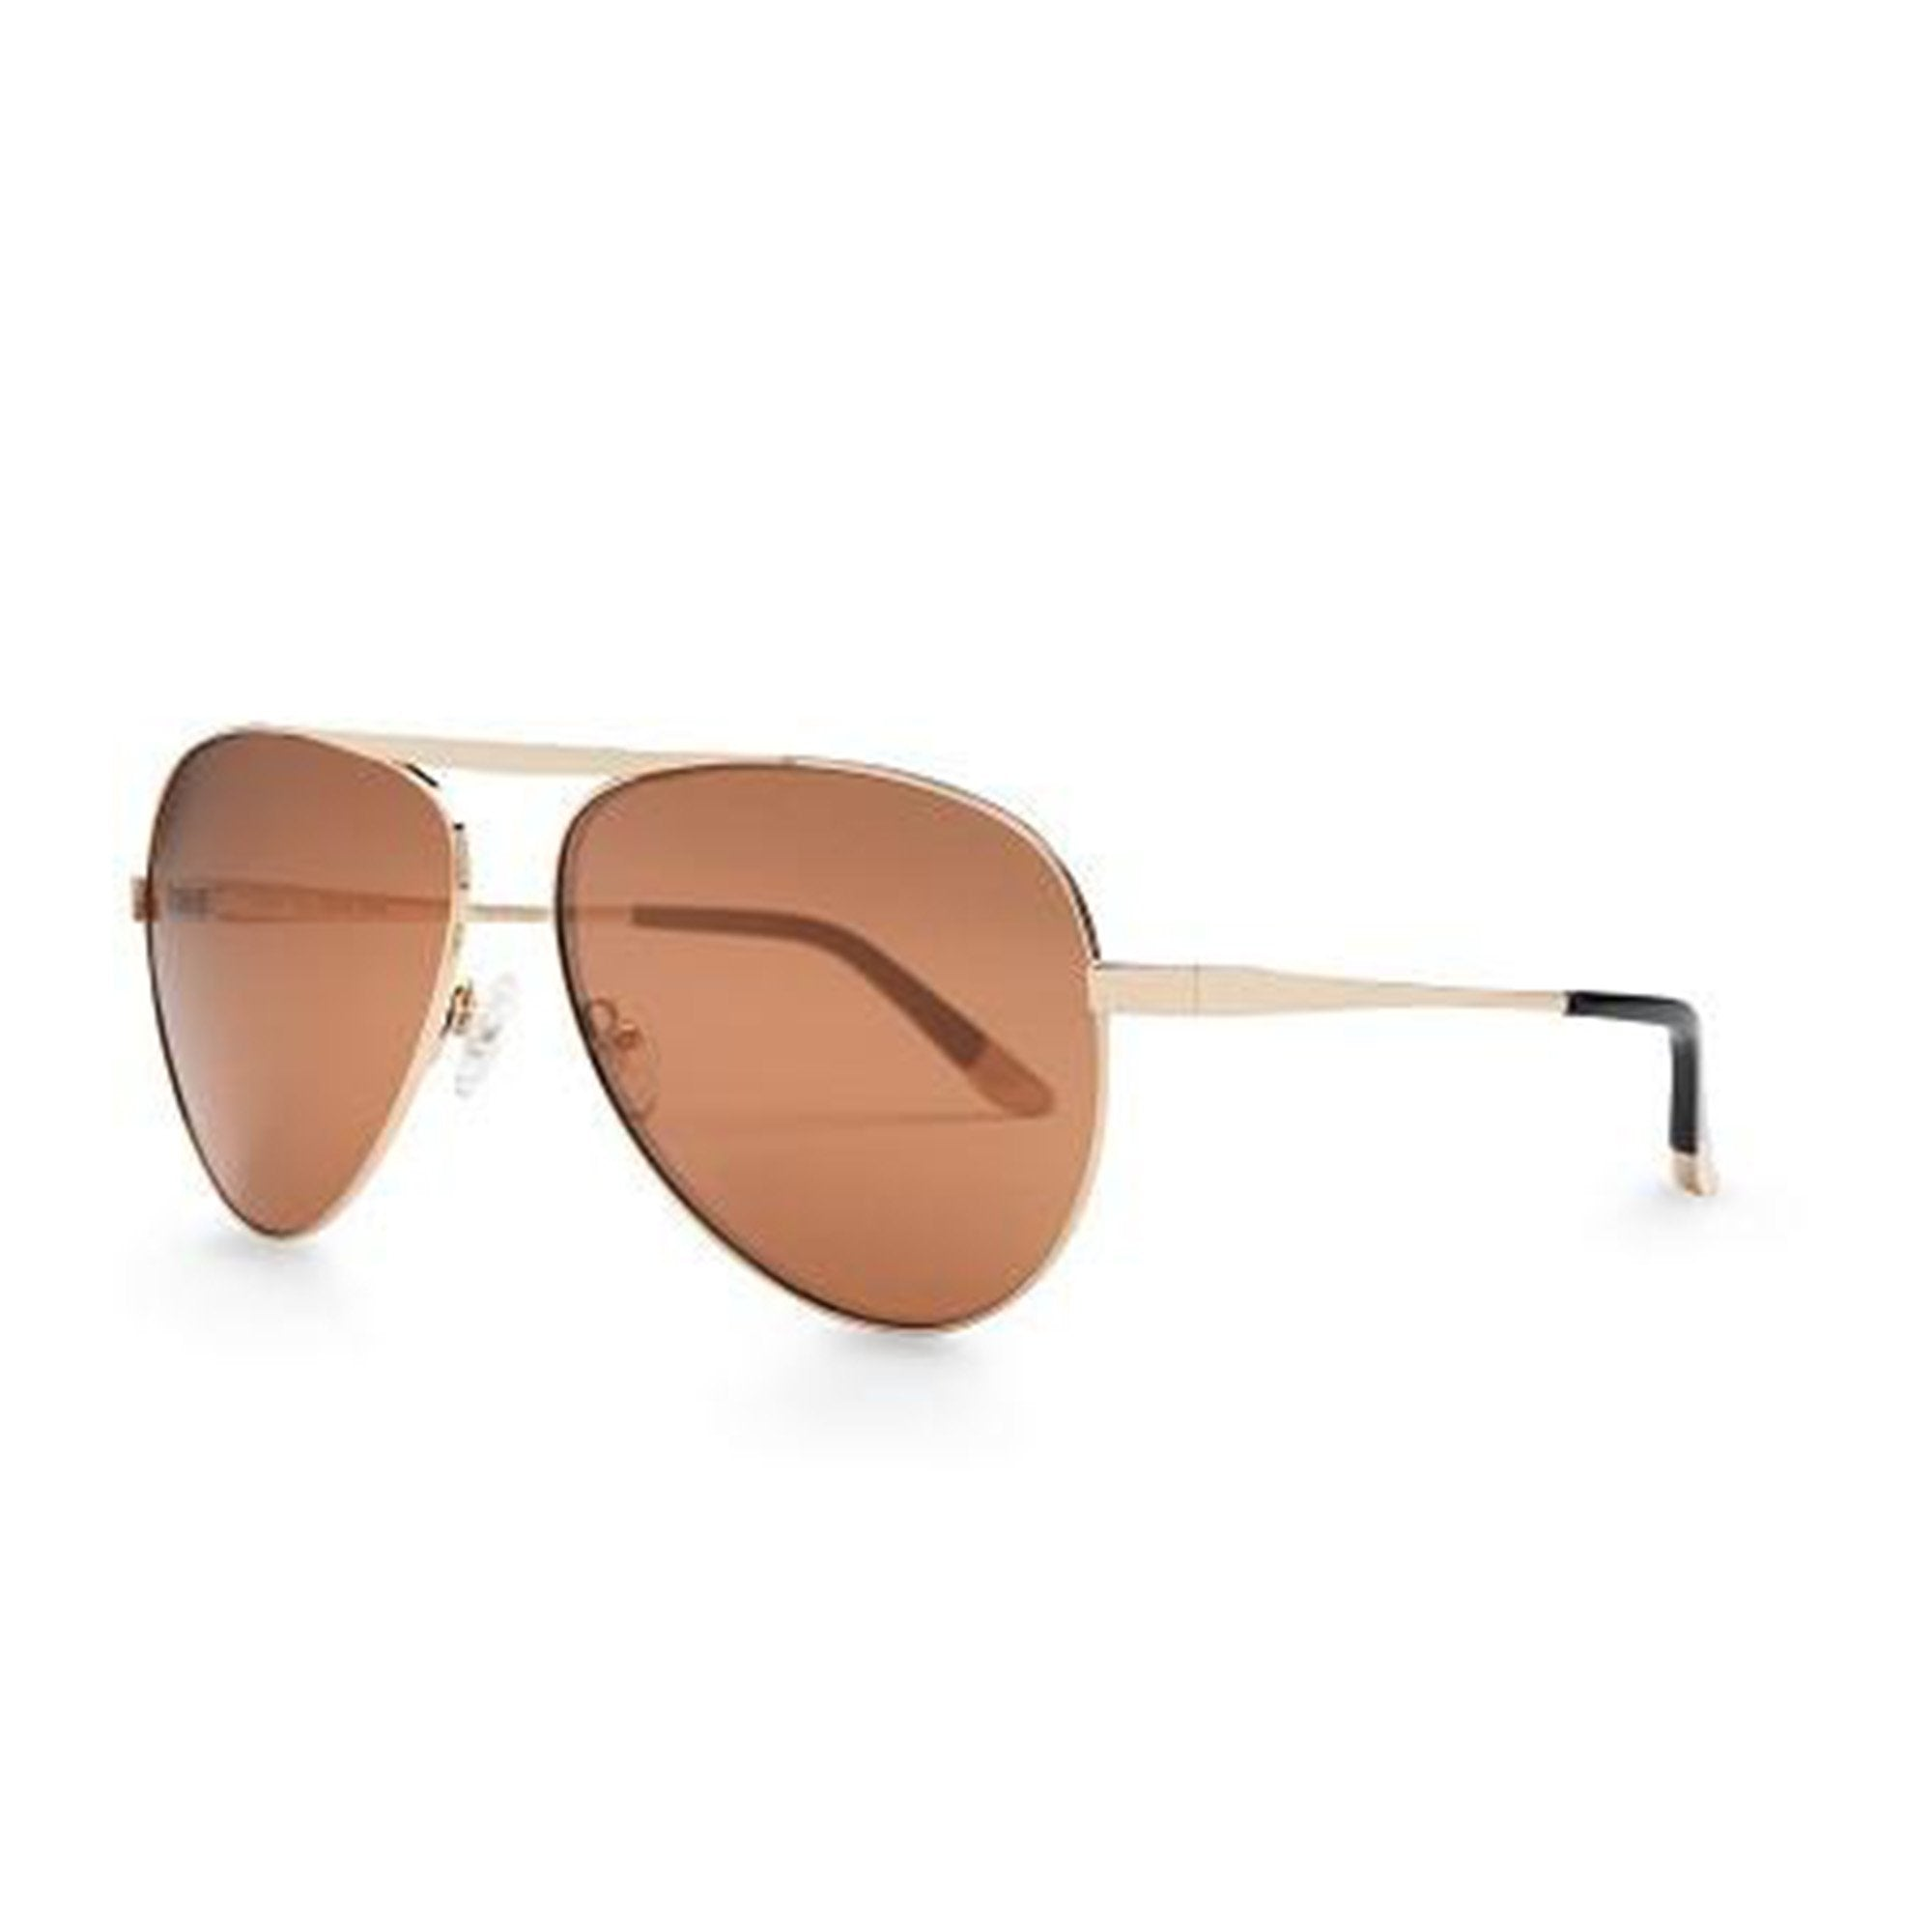 REVE by RENE wish you were here aviator sunglasses champagne tan